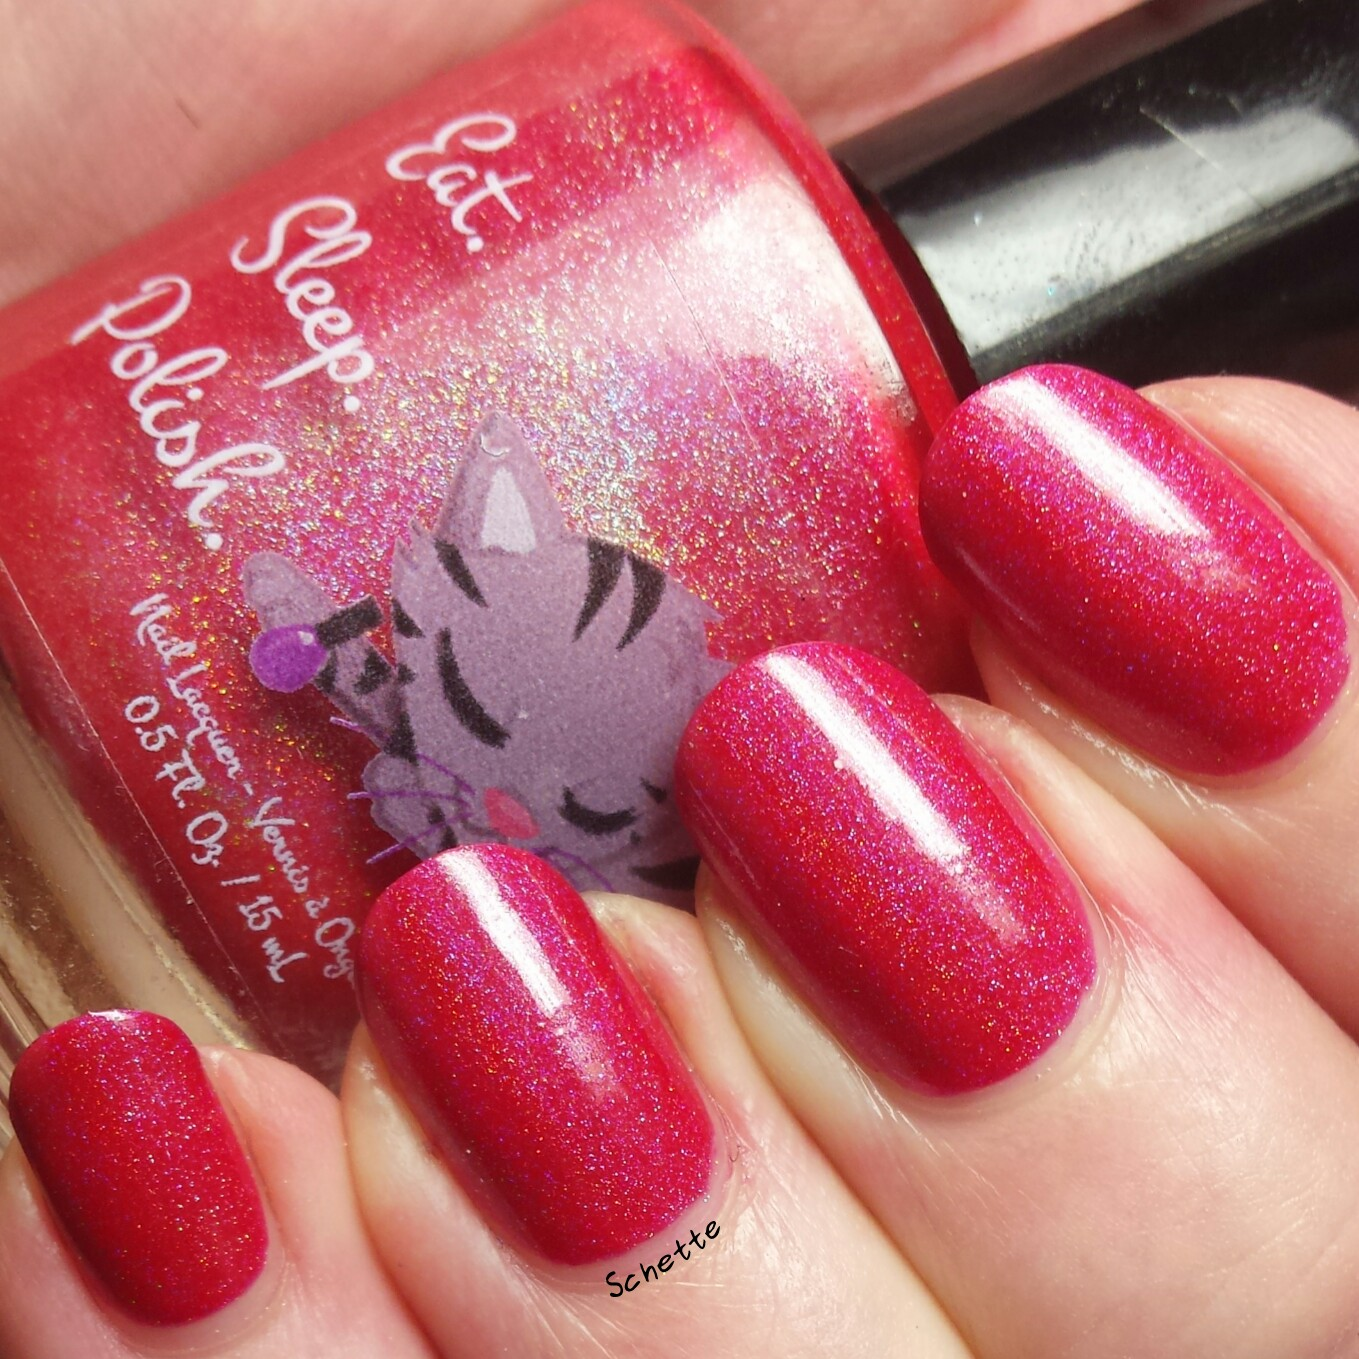 Eat Sleep Polish : Love me do